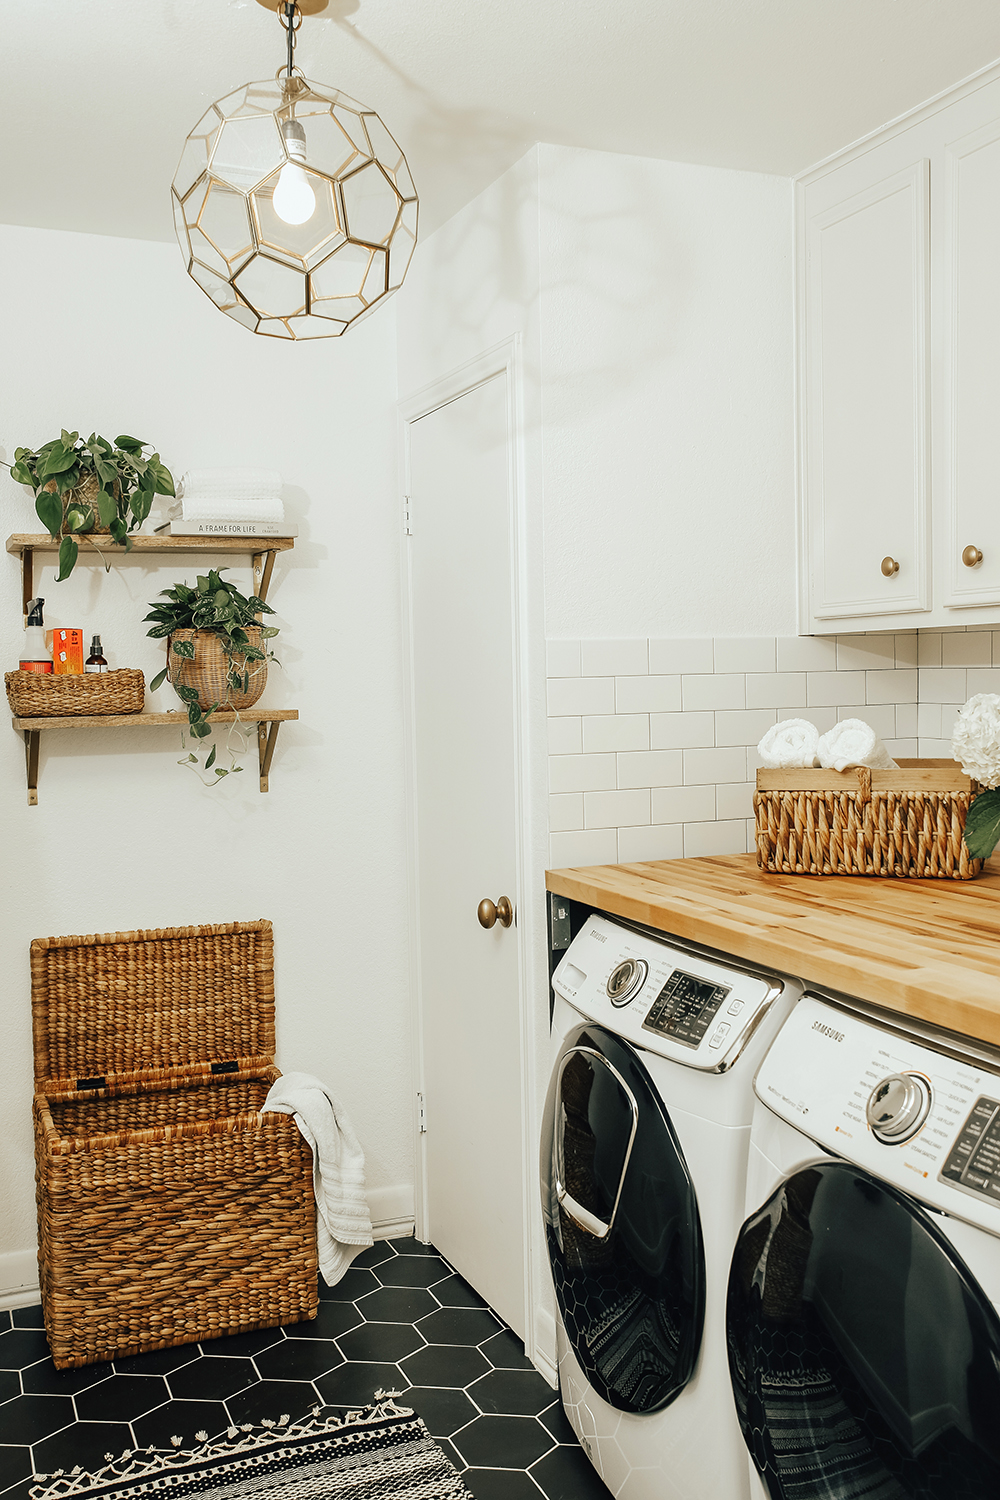 livvyland-blog-olivia-watson-home-decor-interior-design-before-after-laundry-room-makeover-renovation-update-1